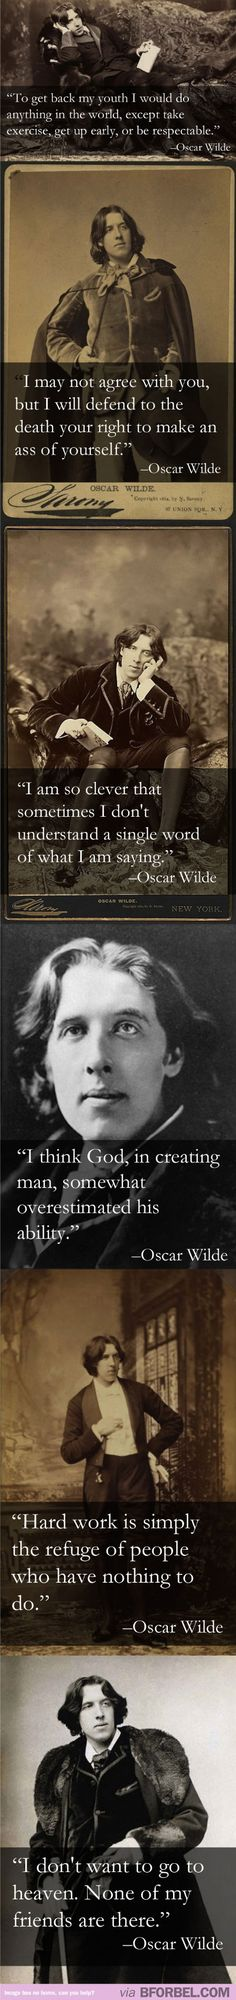 Oscar Wilde is just the sassiest person who lived in his time